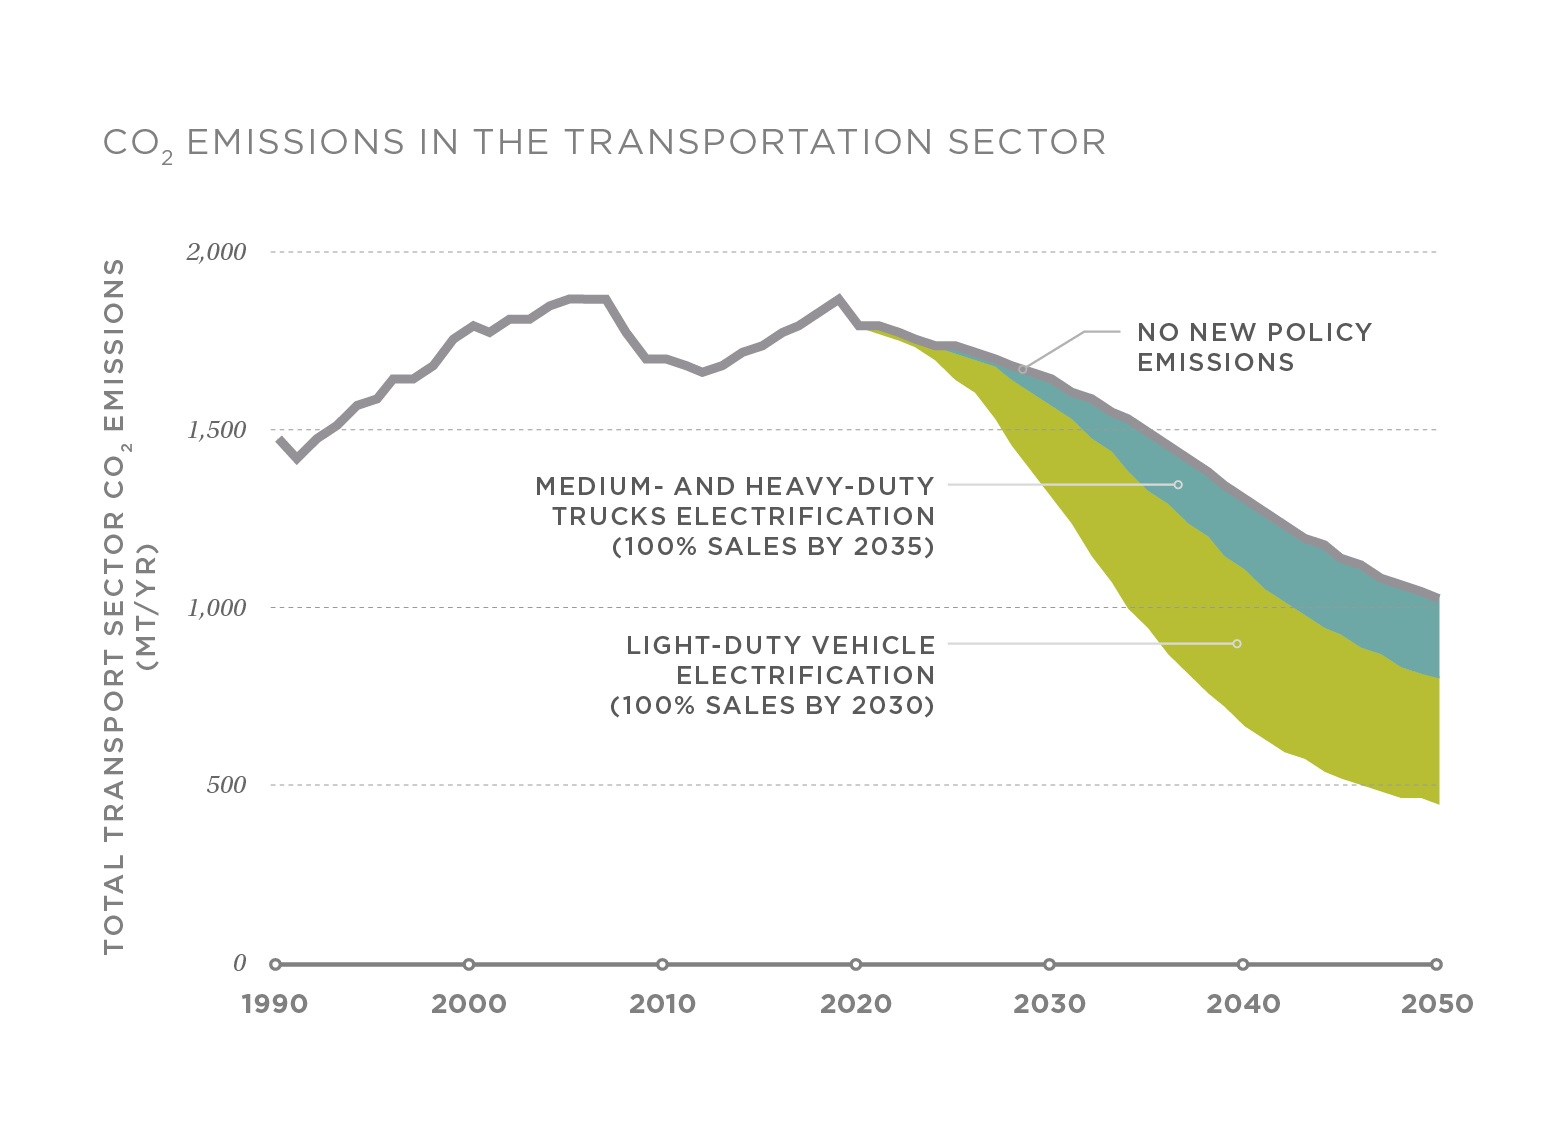 Transportation sector CO2 emissions in the DRIVE Clean and No New Policy scenarios through 2050.